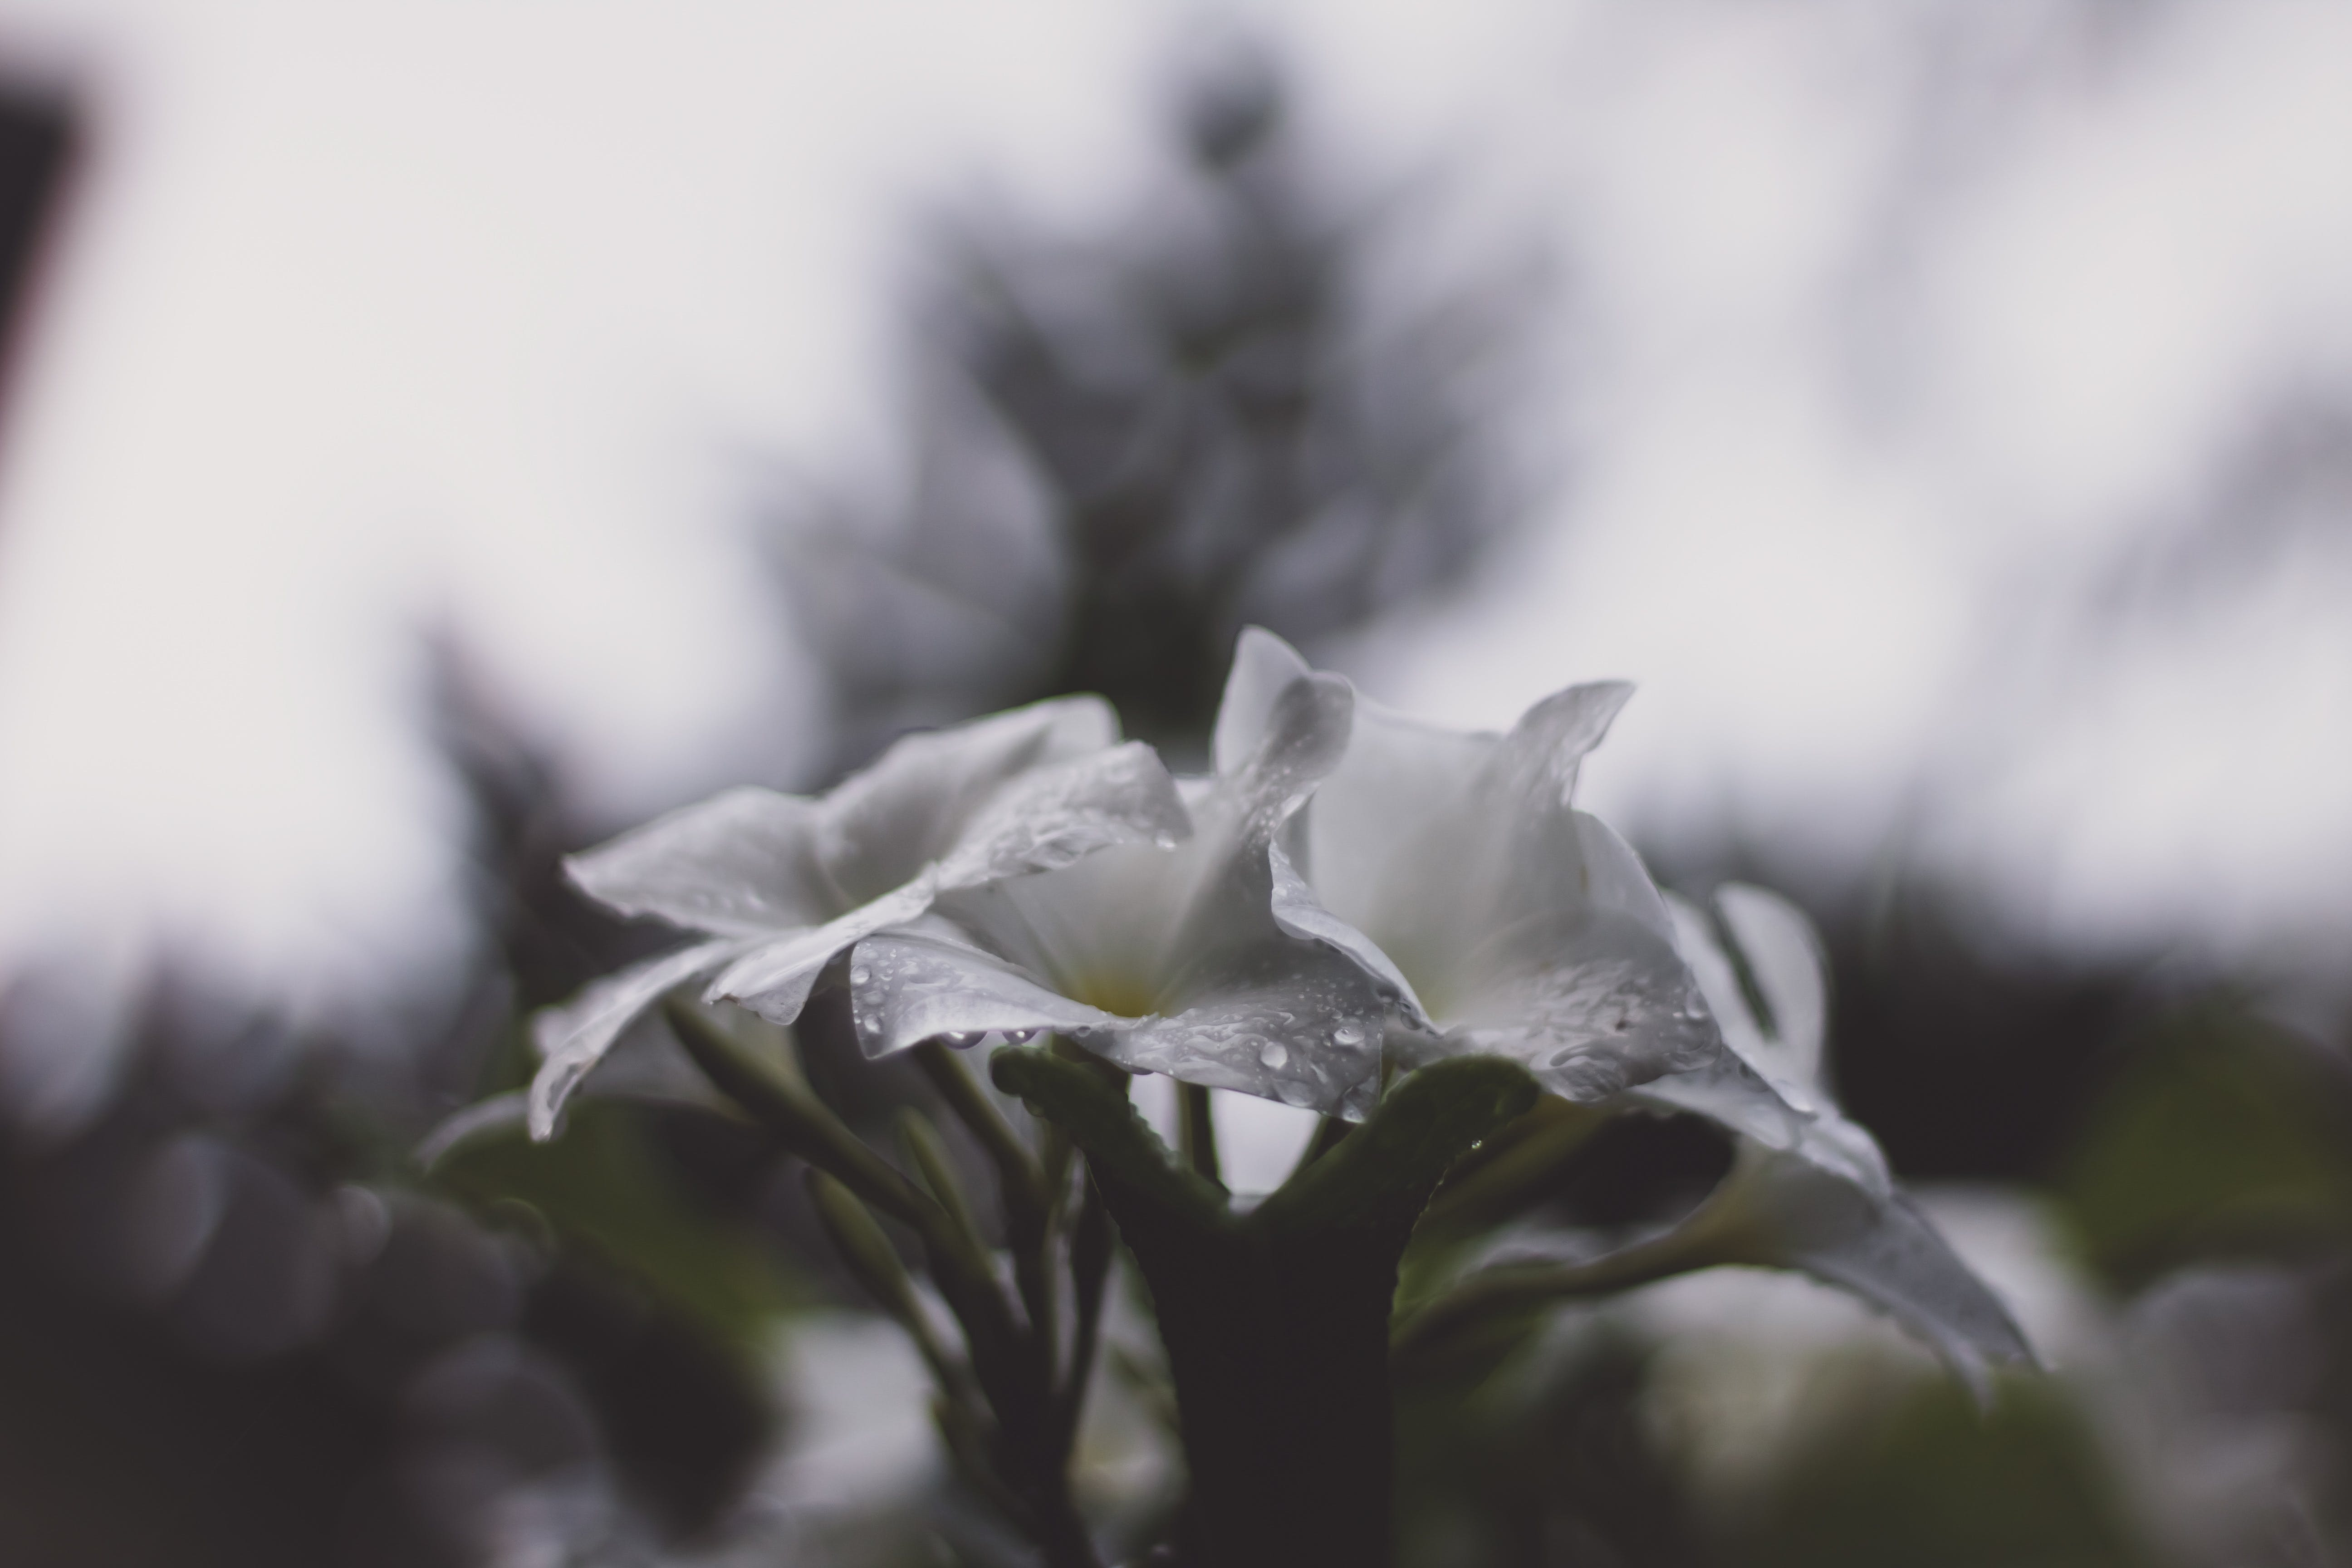 Selective Focus Phogograph of White Petaled Flower